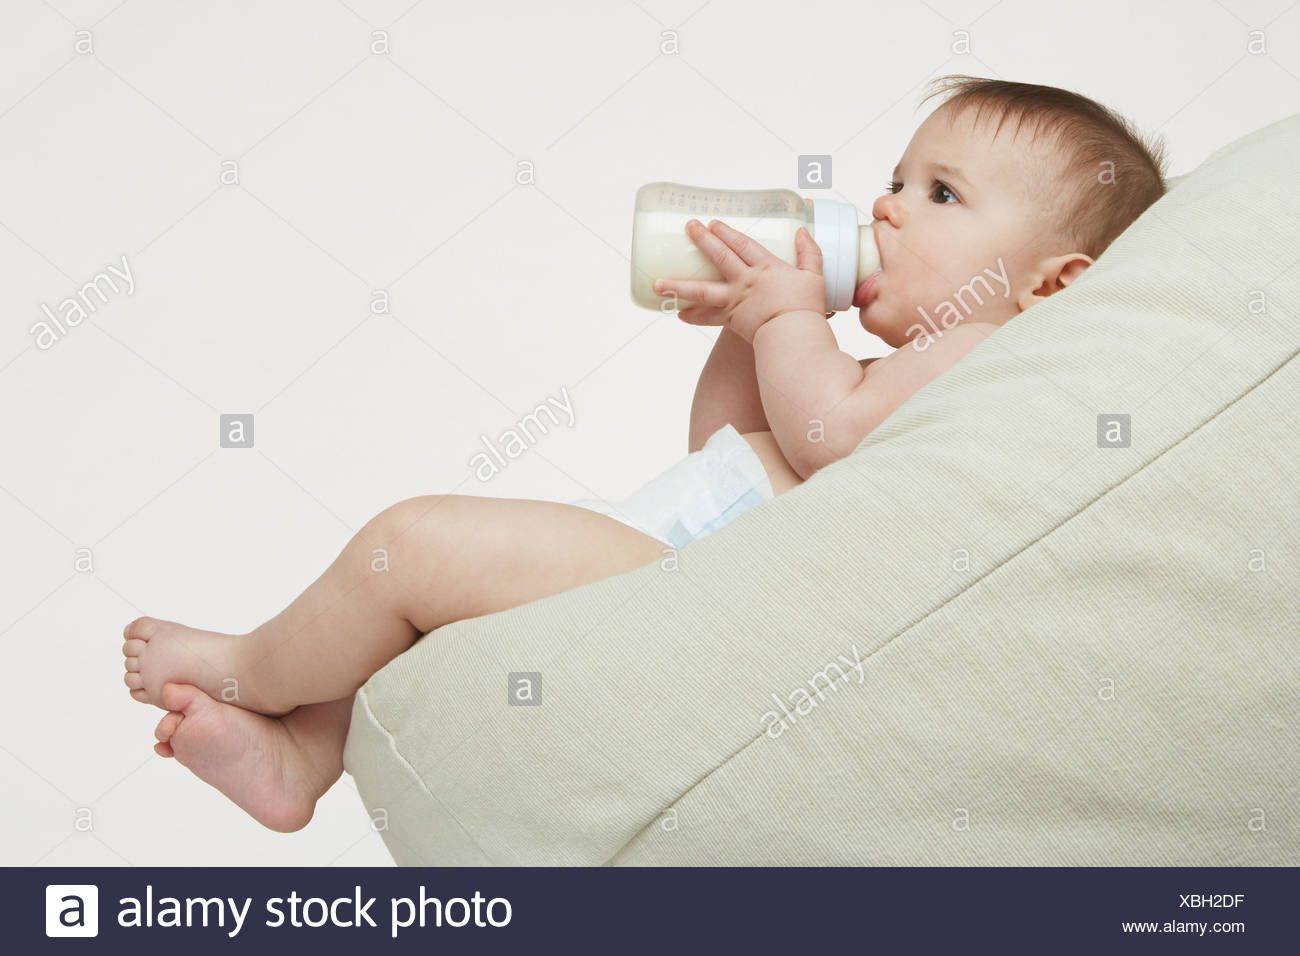 A baby with a bottle - Stock Image